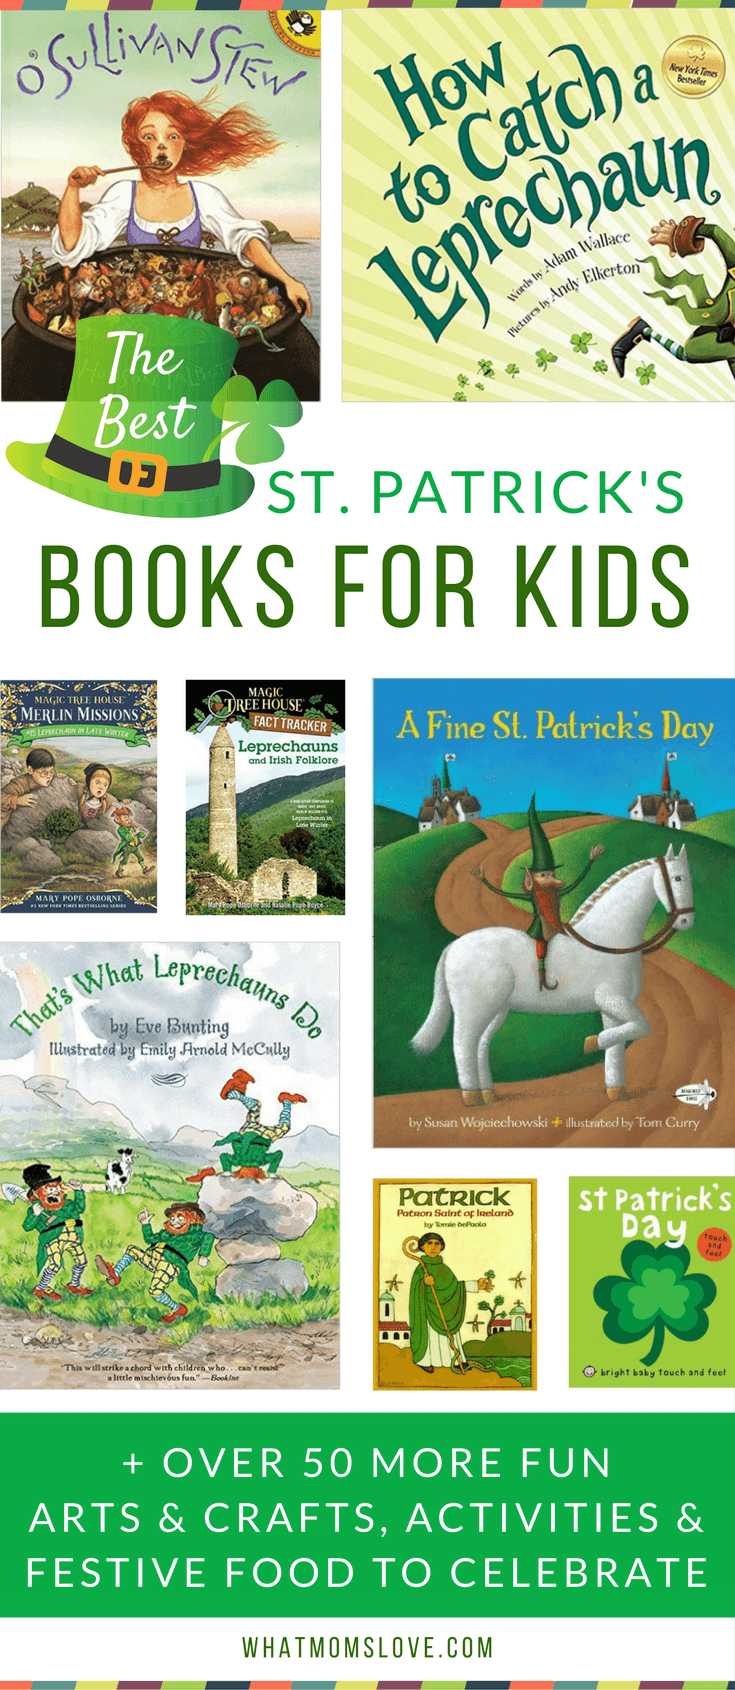 The Best St Patricks Day Books For Kids + Arts and Crafts, DIY, Printables, Activities, Leprechaun Traps, Tricks and Festive Food to celebrate!